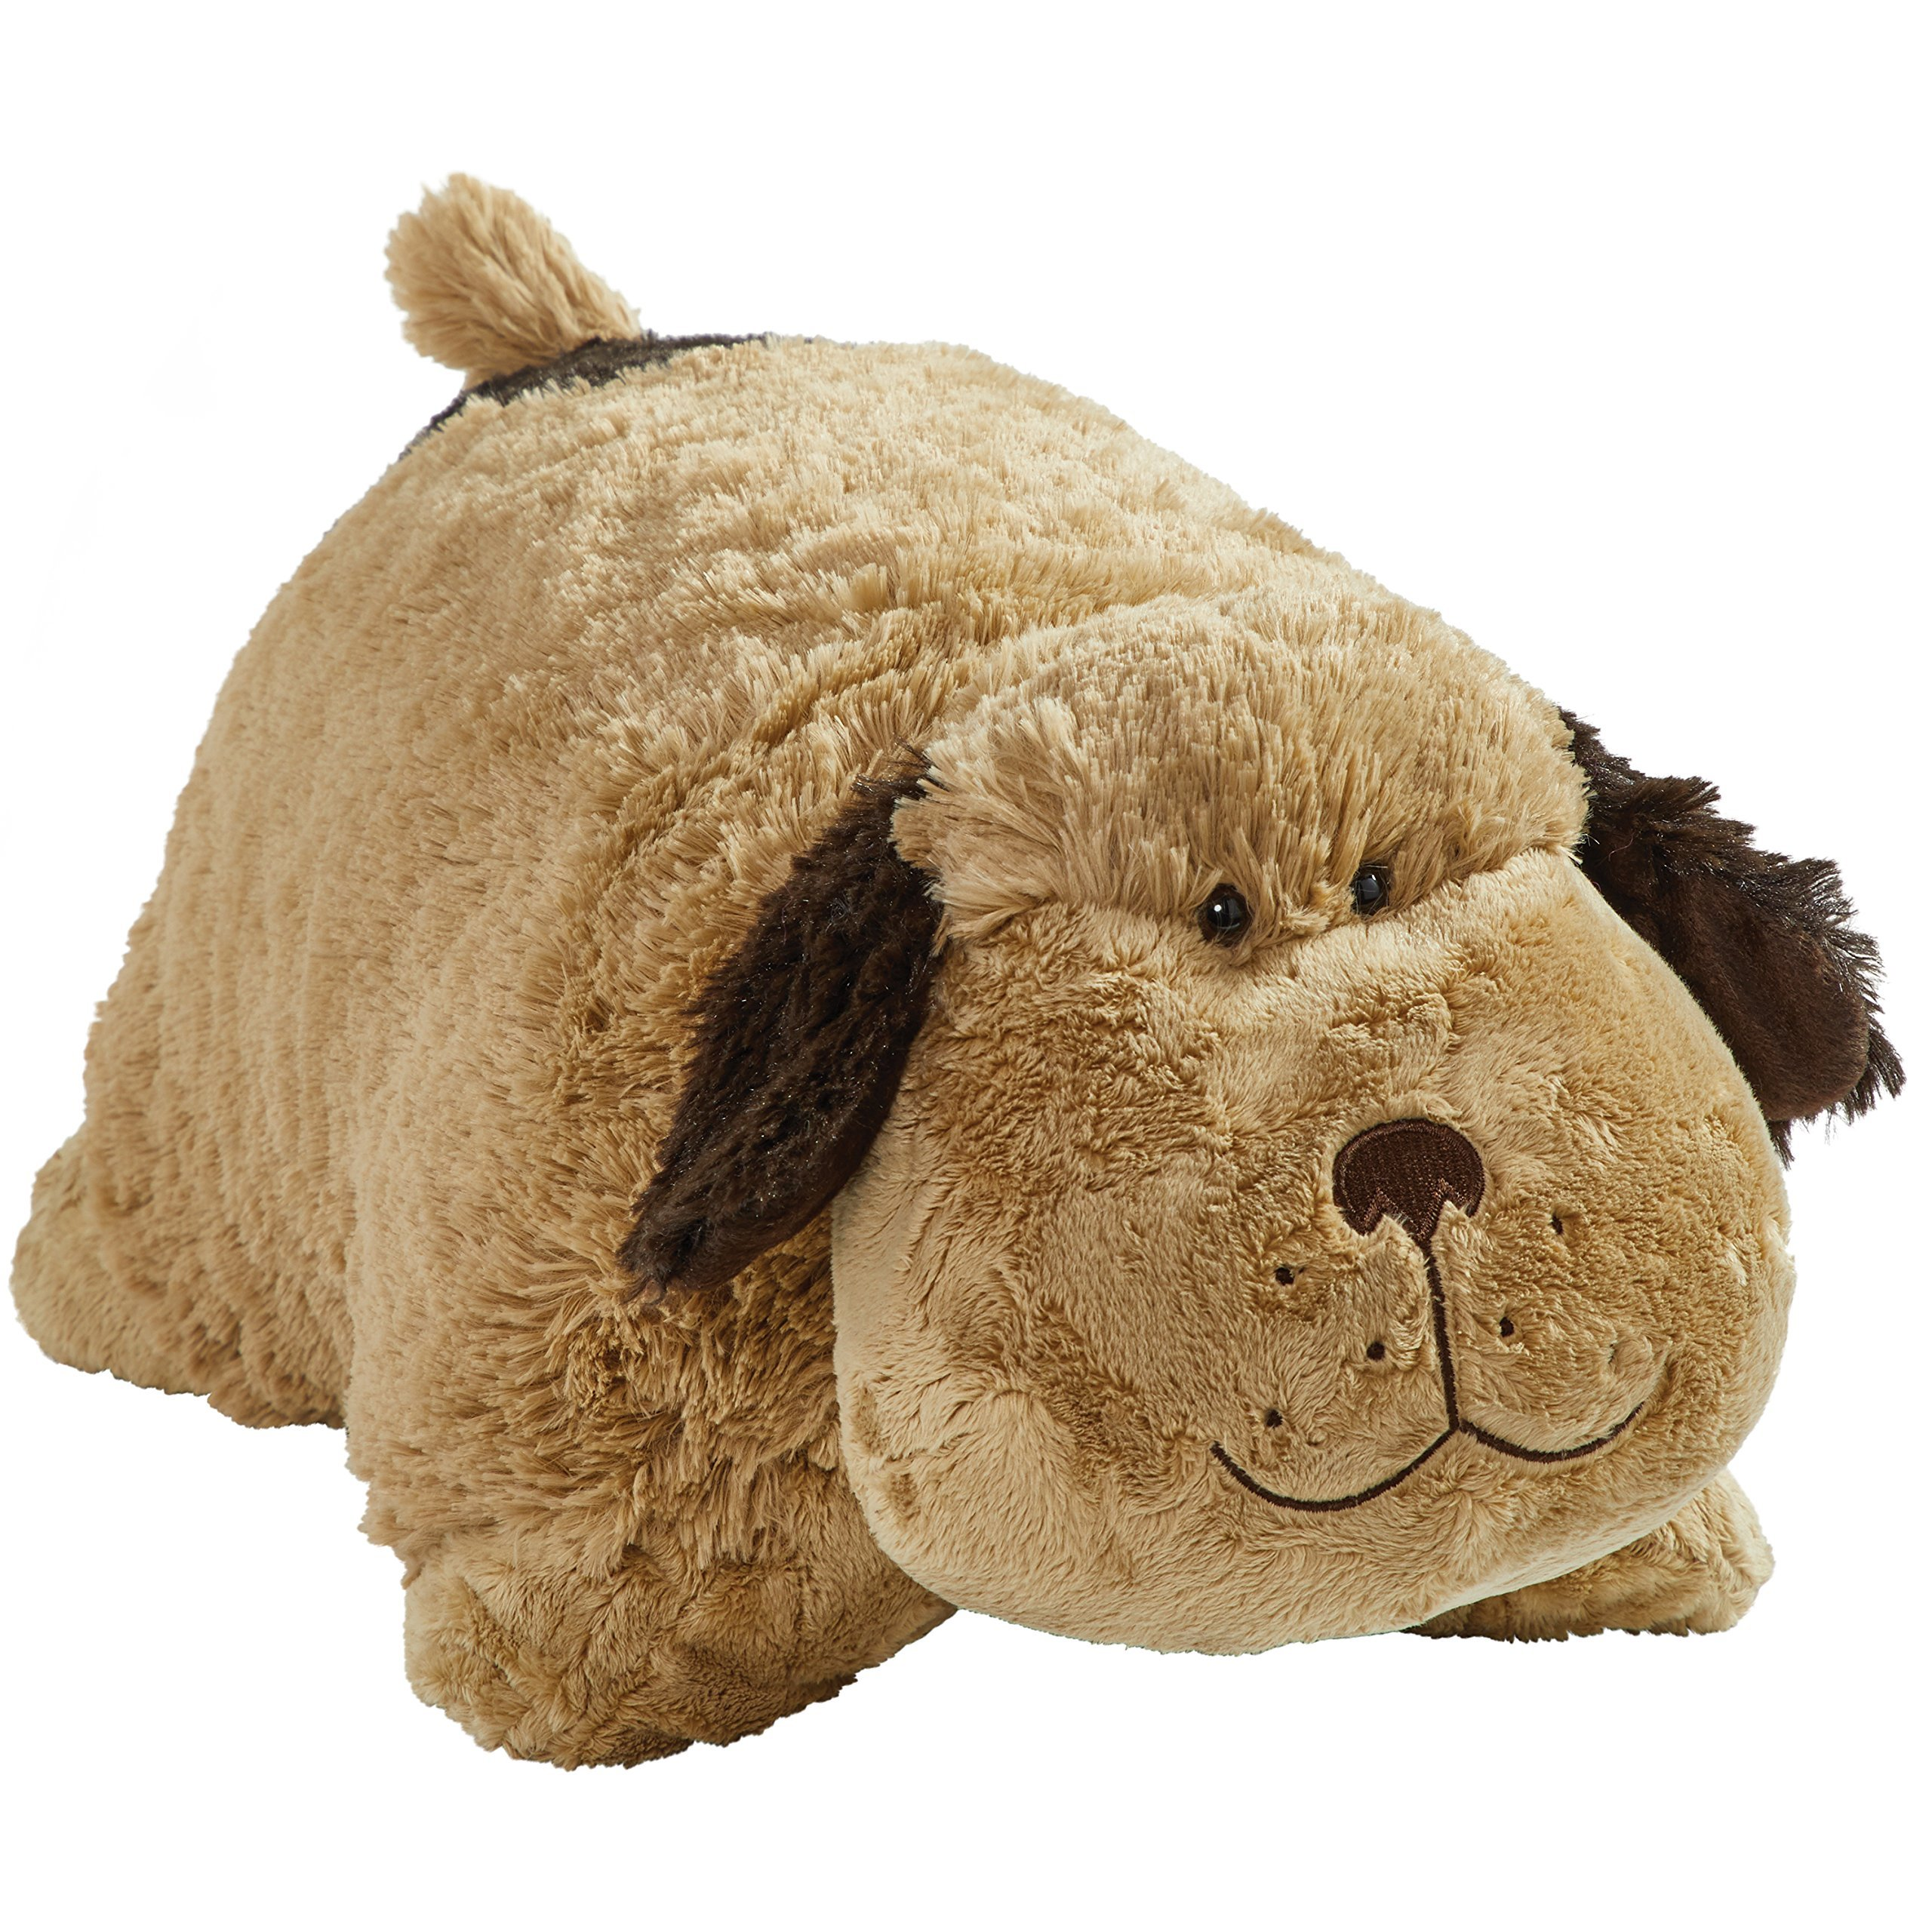 Pillow Pets Snuggly Puppy - Signature 18'' Plush by Pillow Pets